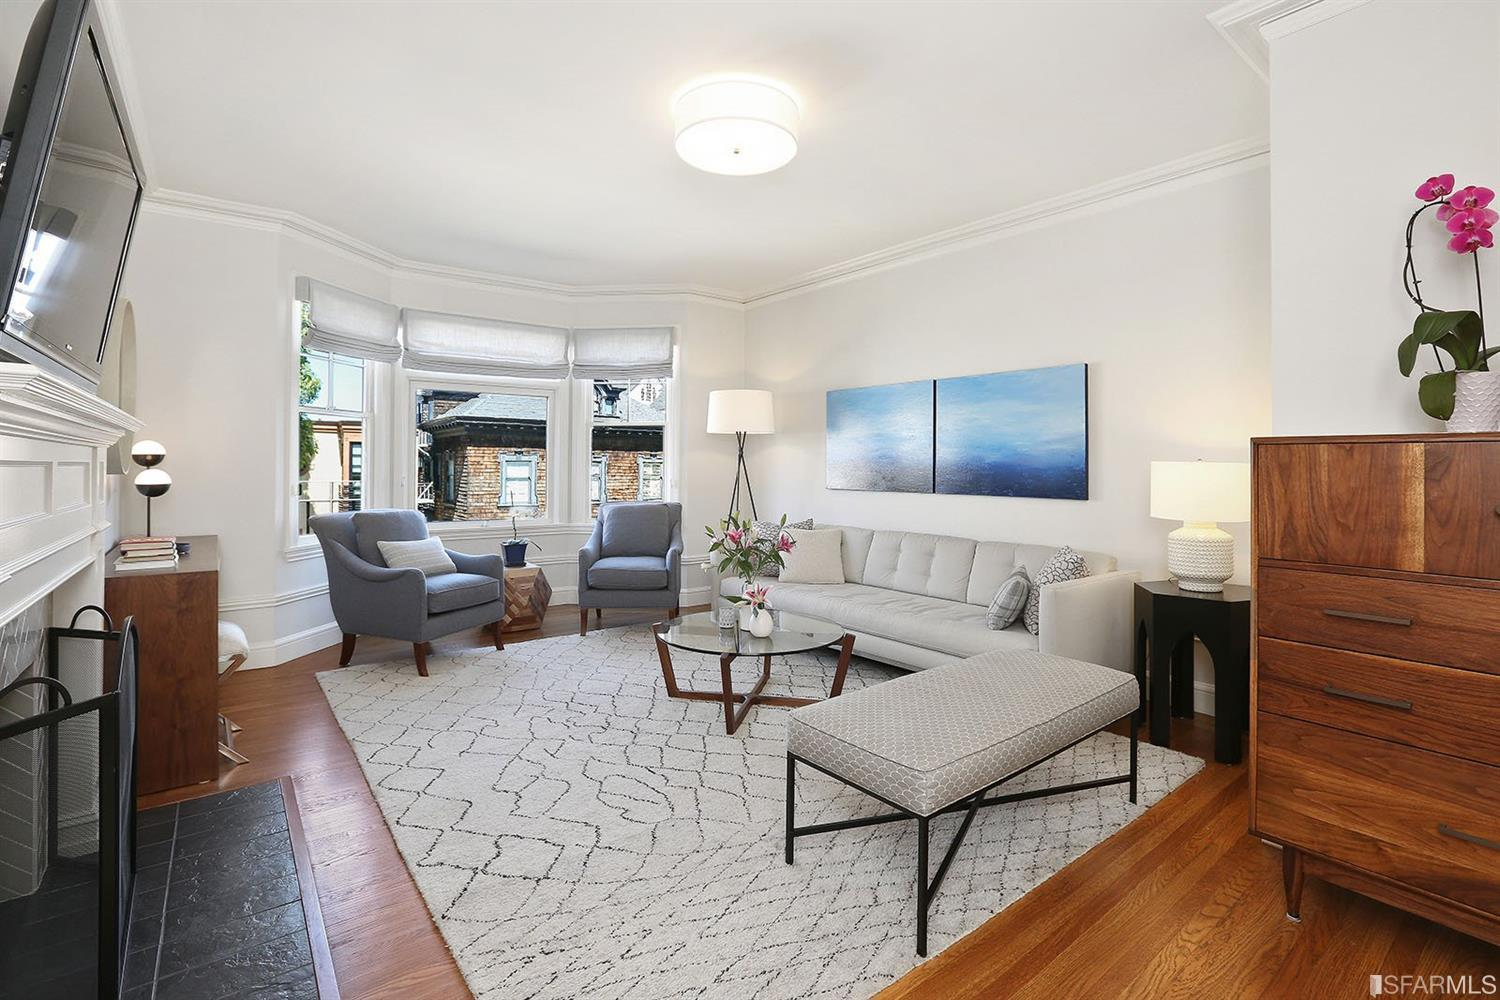 Additional photo for property listing at 2447 Vallejo Street  SAN FRANCISCO, CALIFORNIA 94115